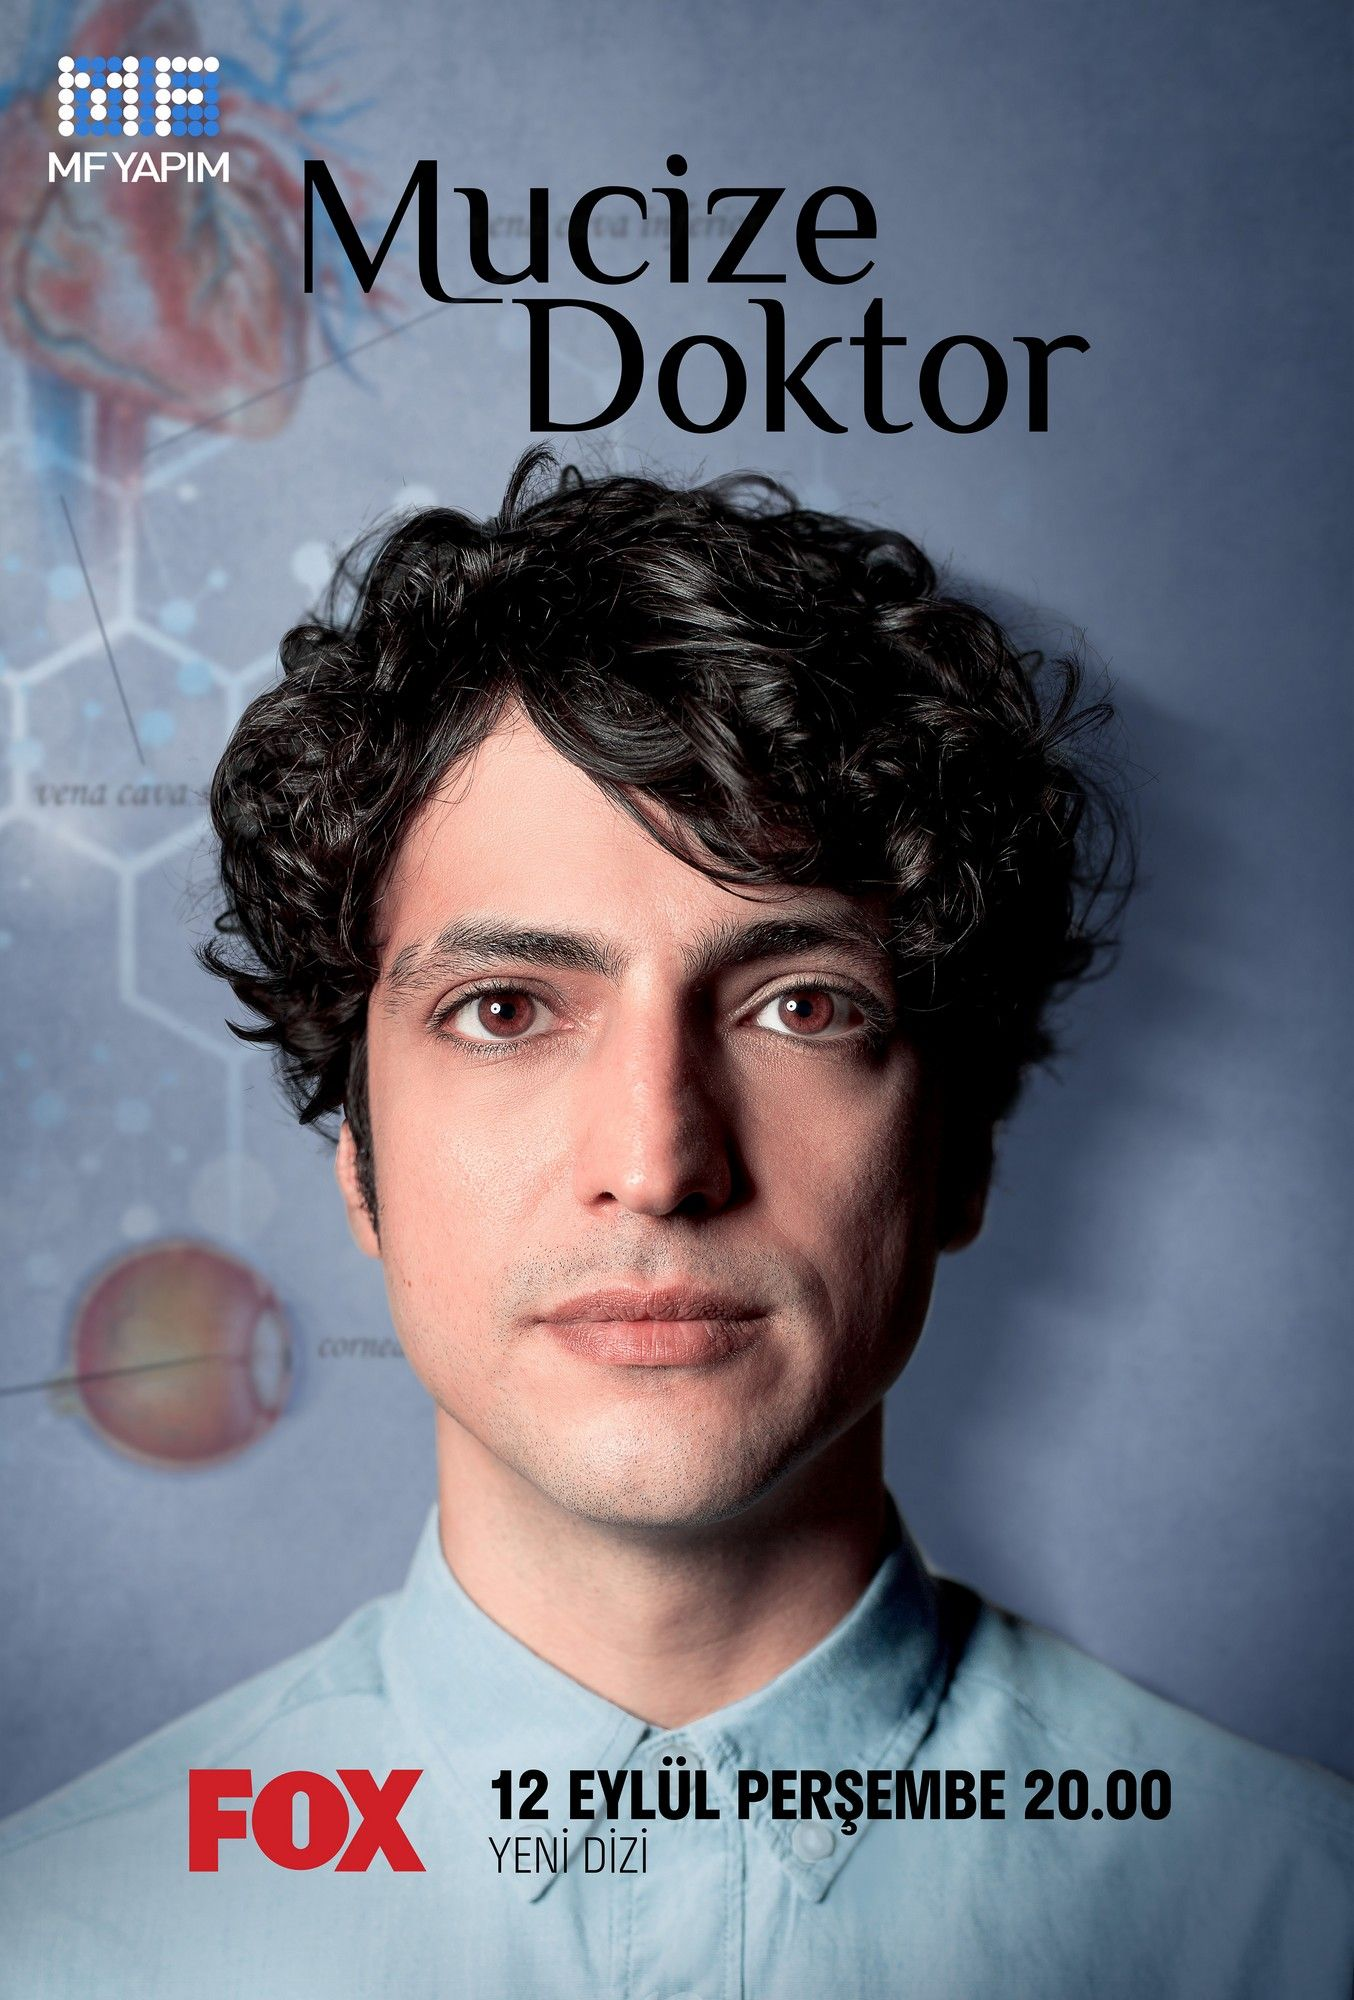 الطبيب المعجزة Drama Tv Series Doctors Series Tv Series